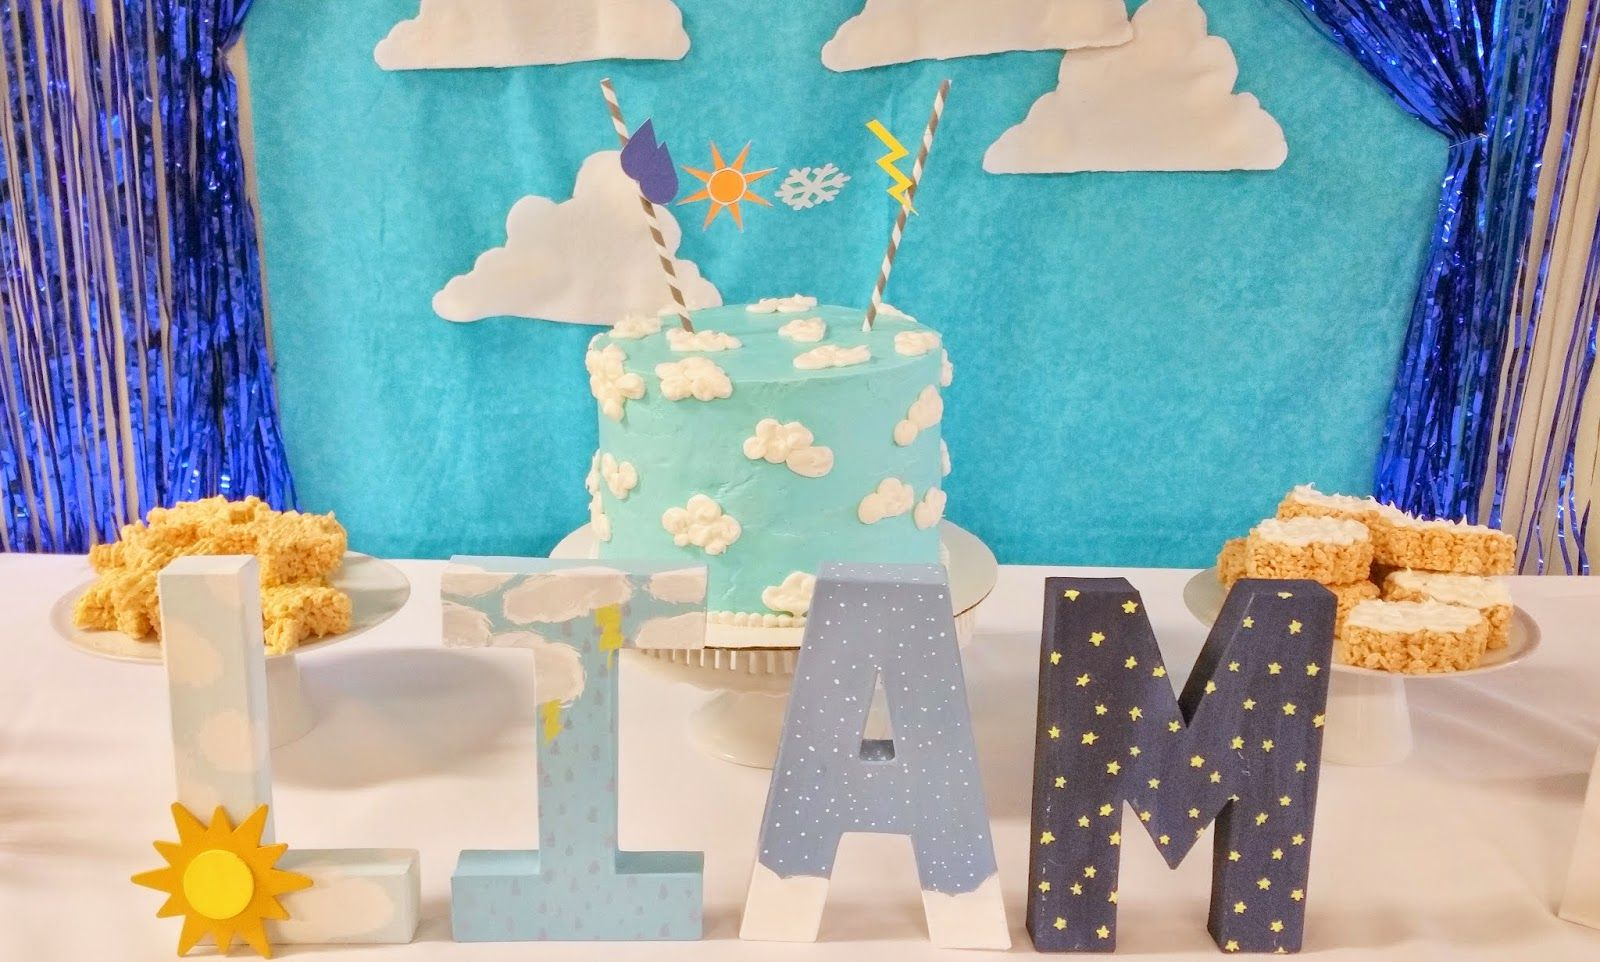 Custom hand painted letters by Morsels Party Planning.